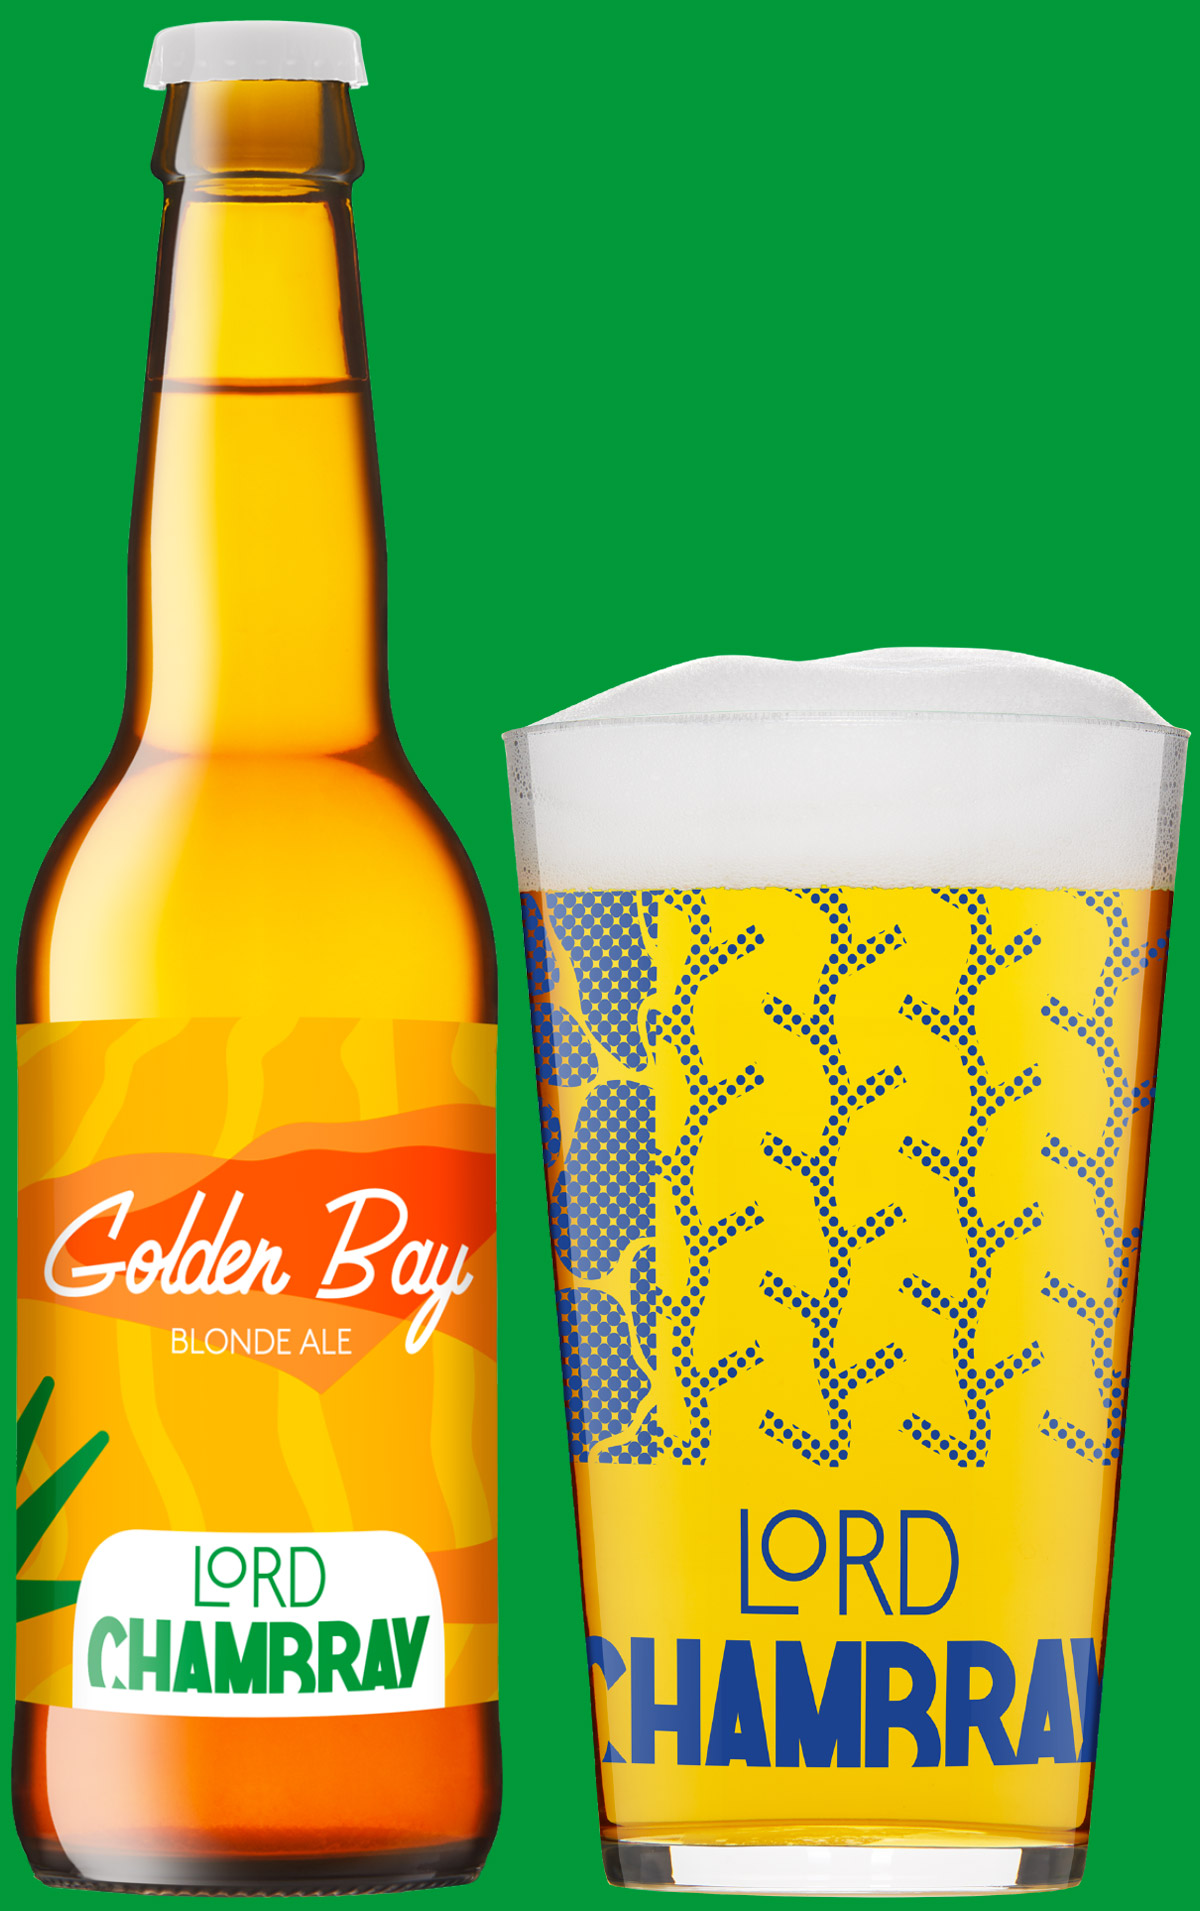 Lord Chambray – Craft Beer from Malta GOLDEN BAY